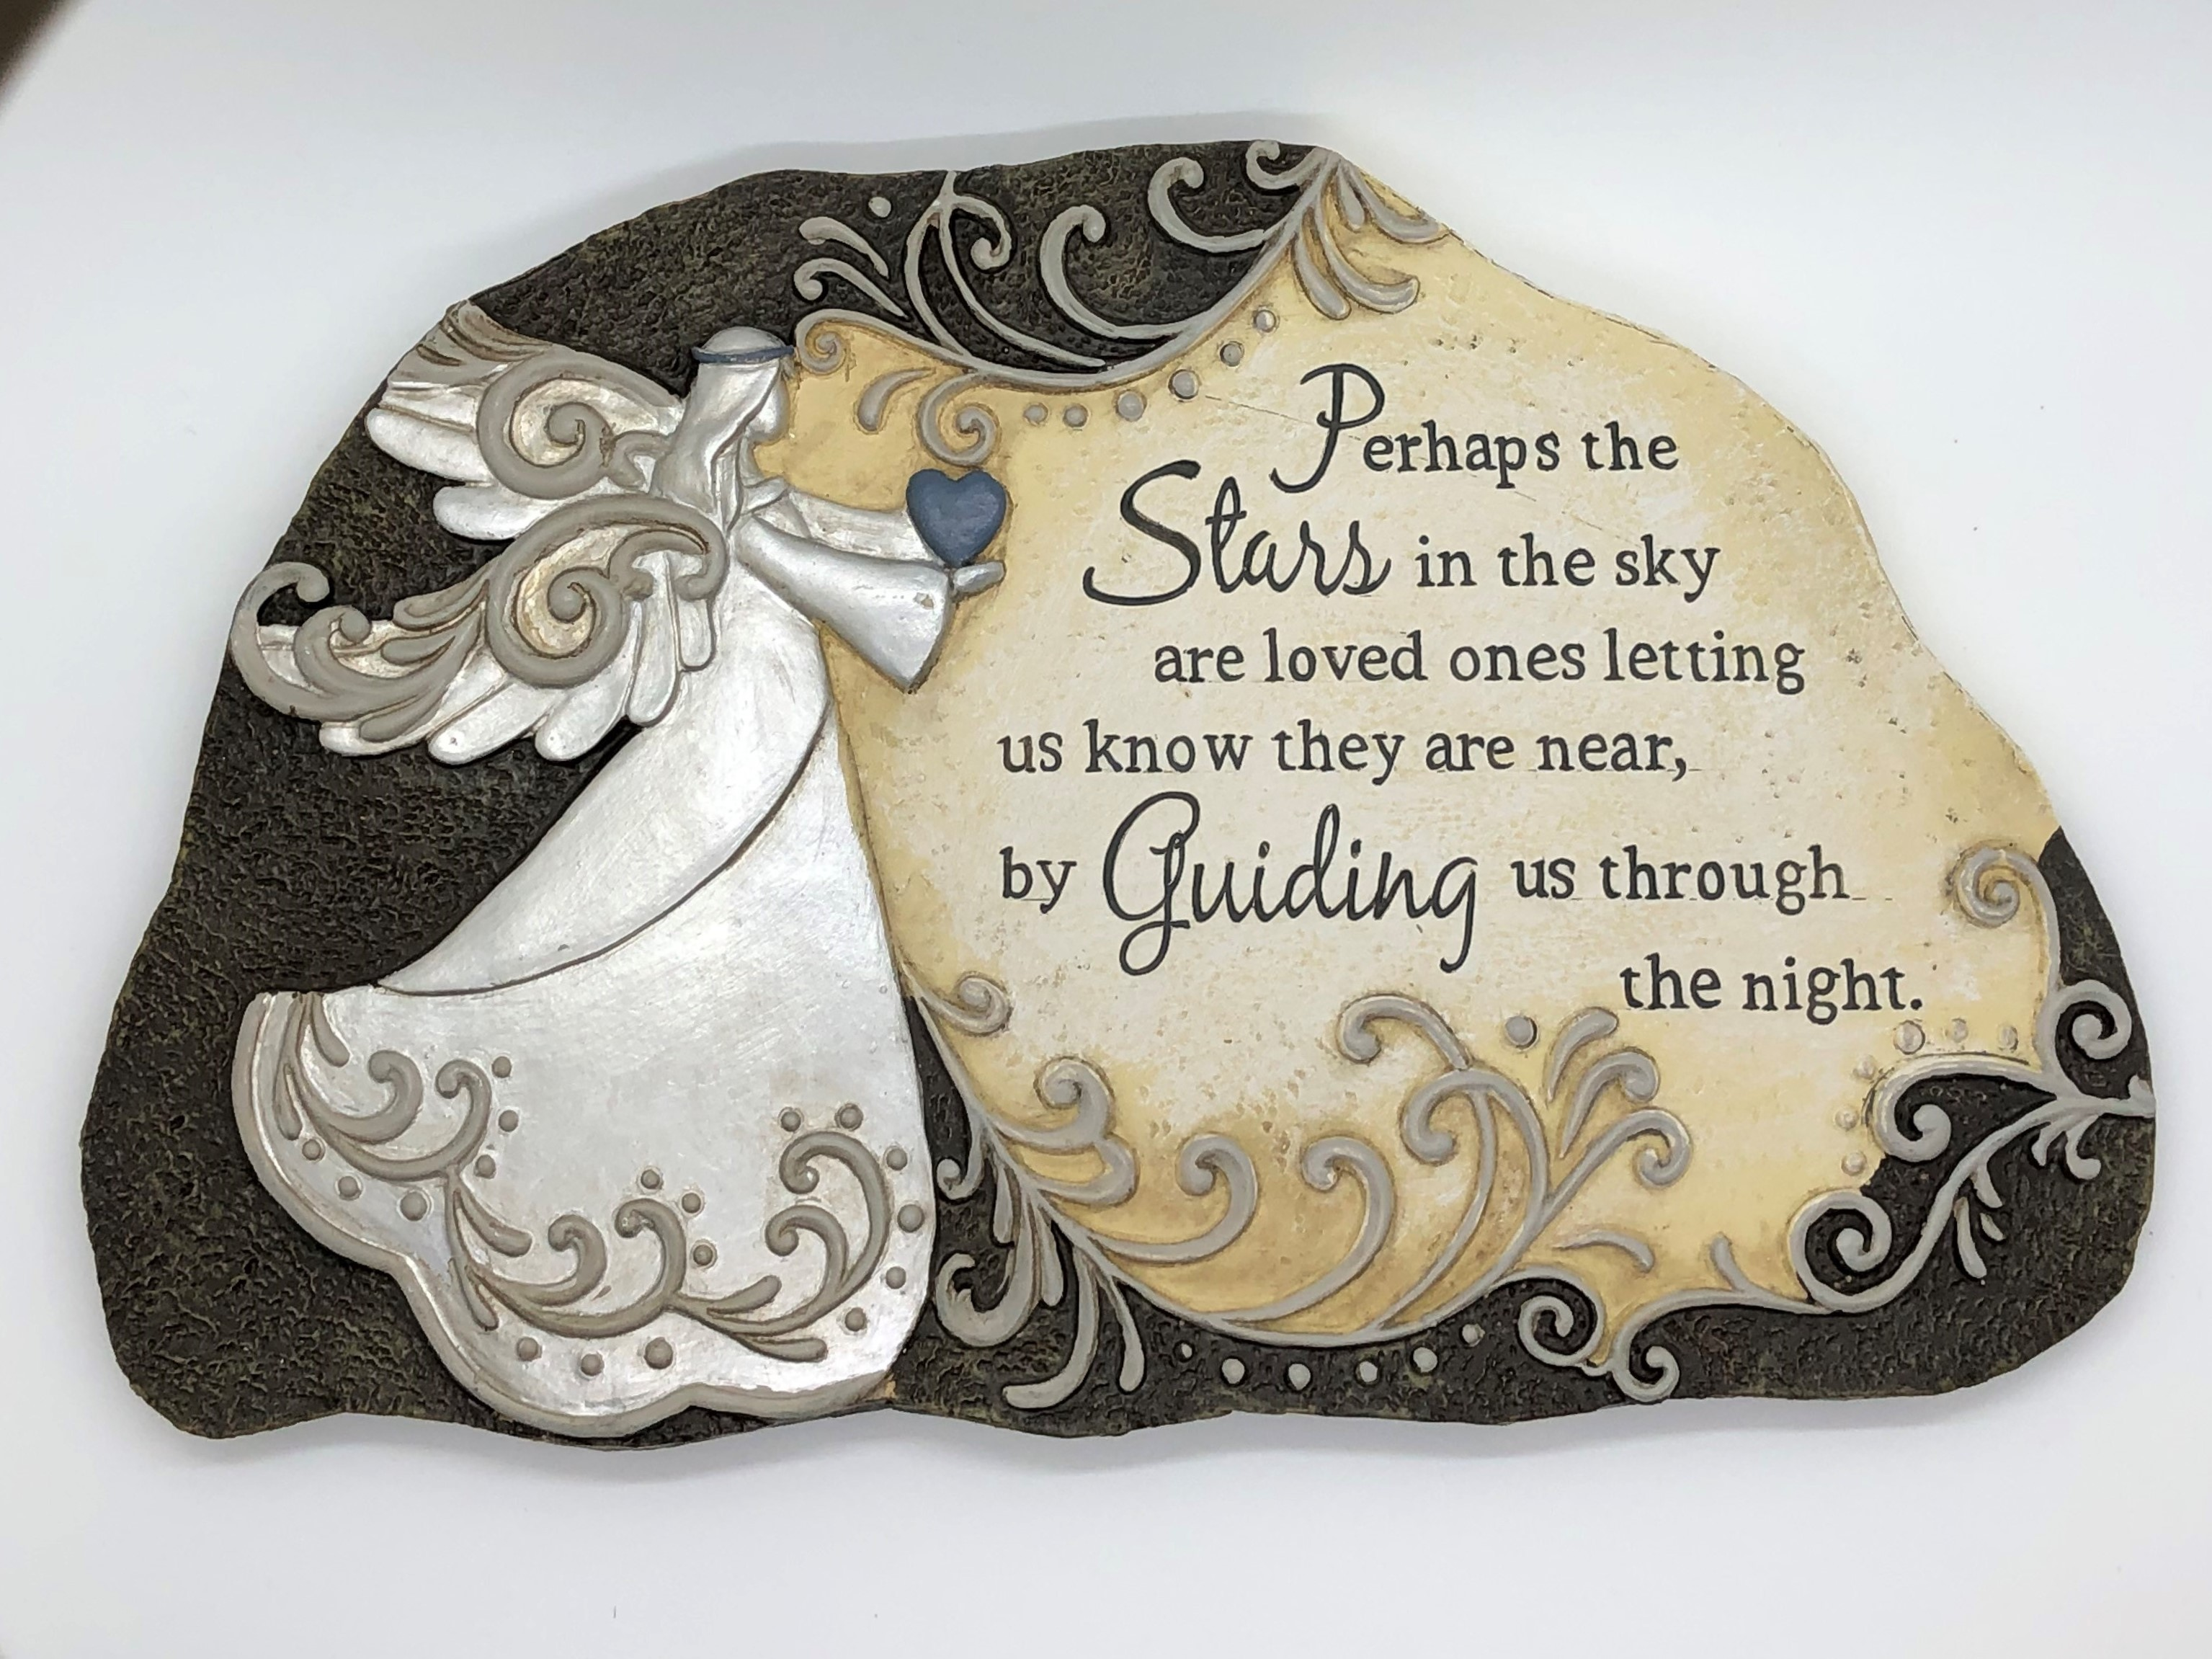 Garden Plaque Stepping Stones ~ Perhaps the stars in the sky are loved ones letting us know they are near, by guiding us through the night